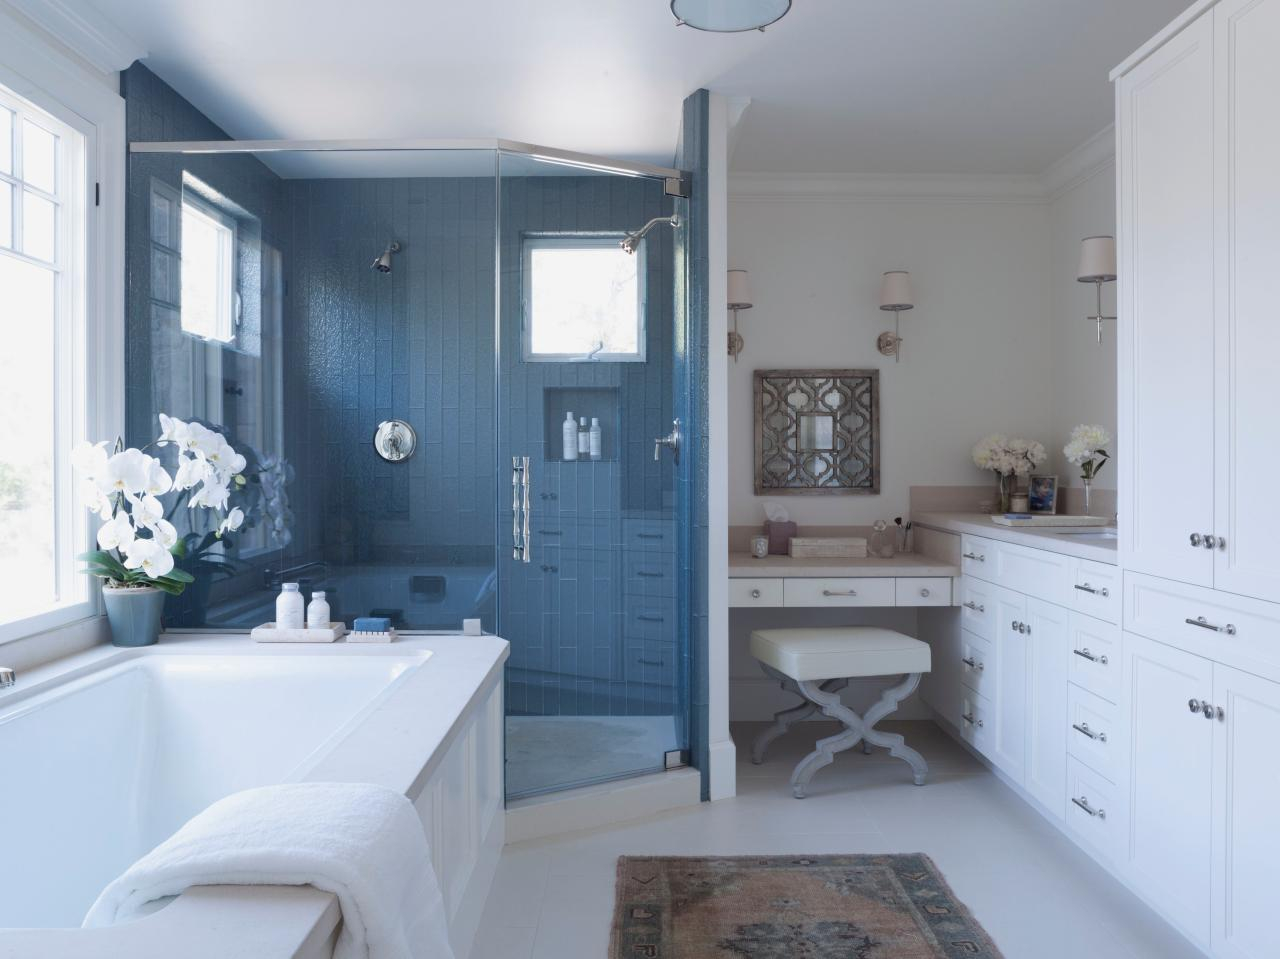 Beautiful Bathroom Remodel Strategies: High-Level Budgets | Diy intended for Unique Blue Bathroom Remodel